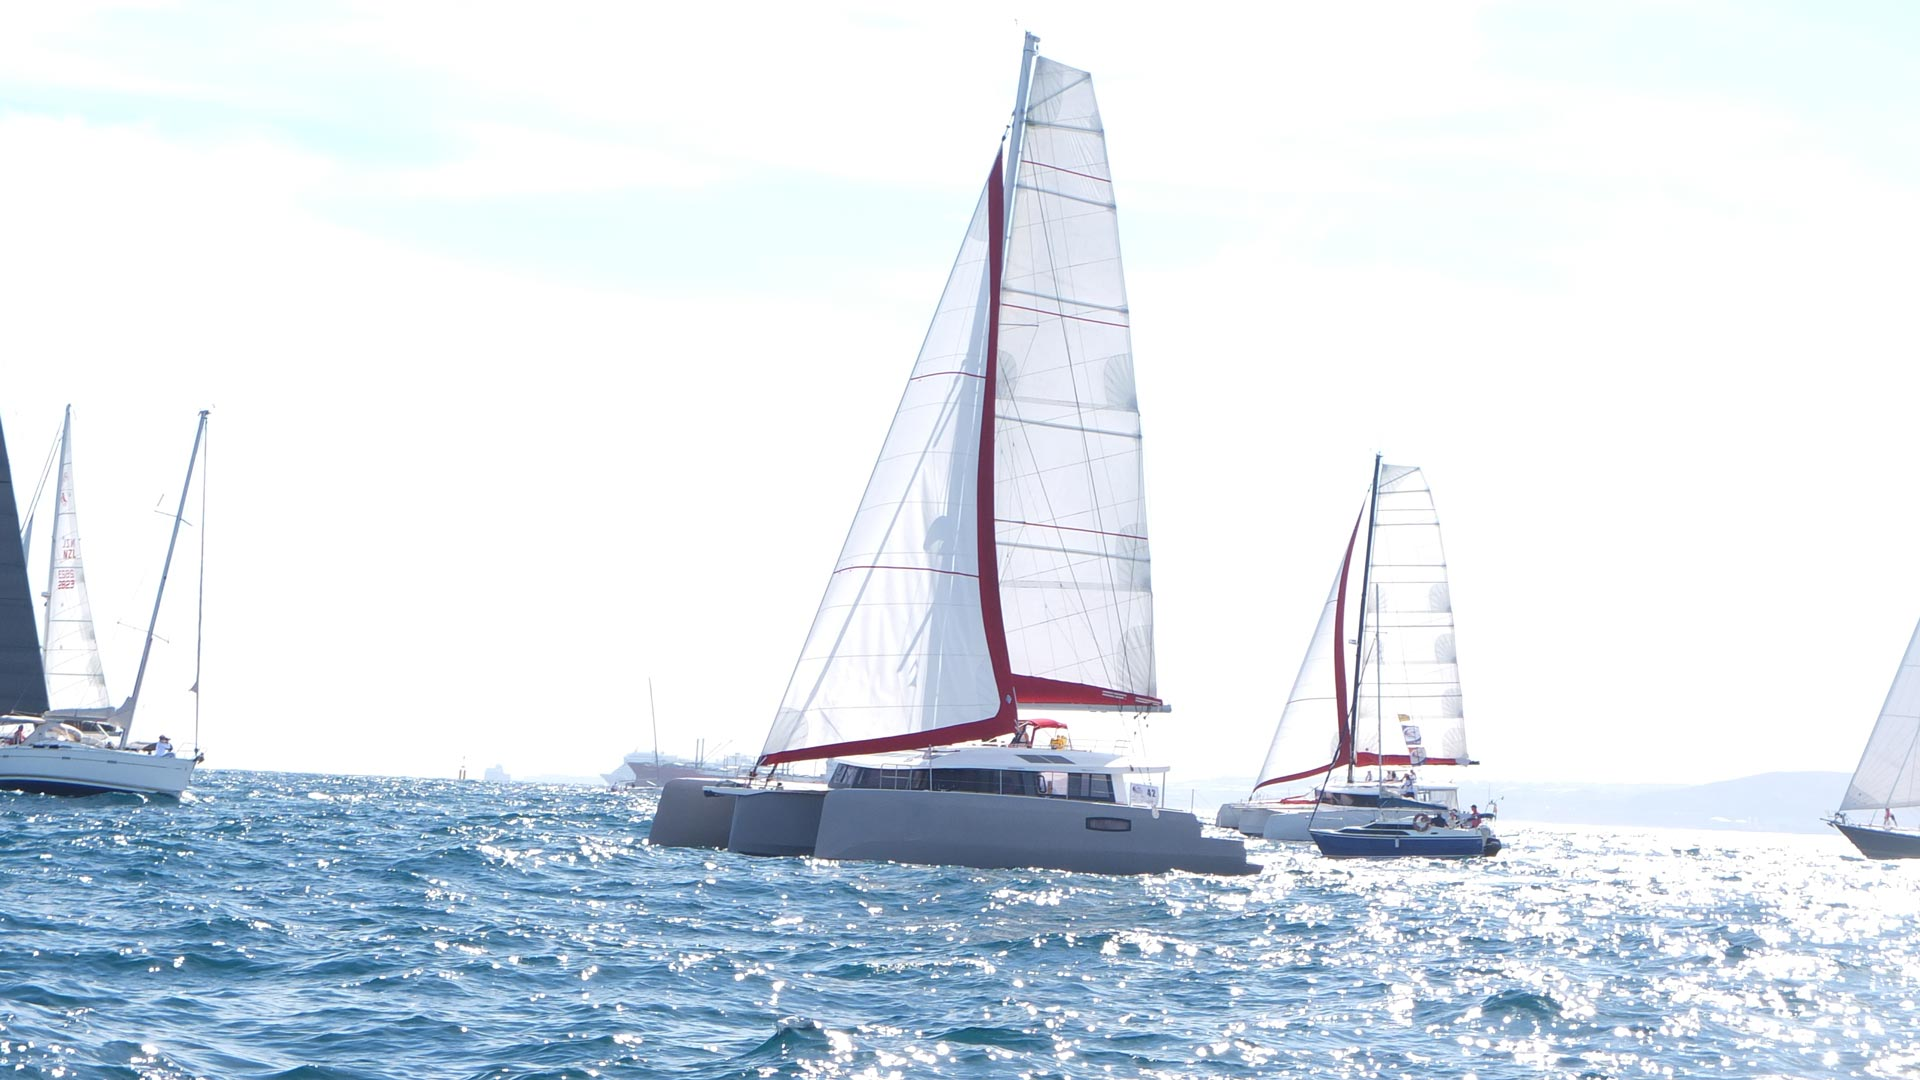 Two NEEL trimarans take the start of the ARC 2020 2